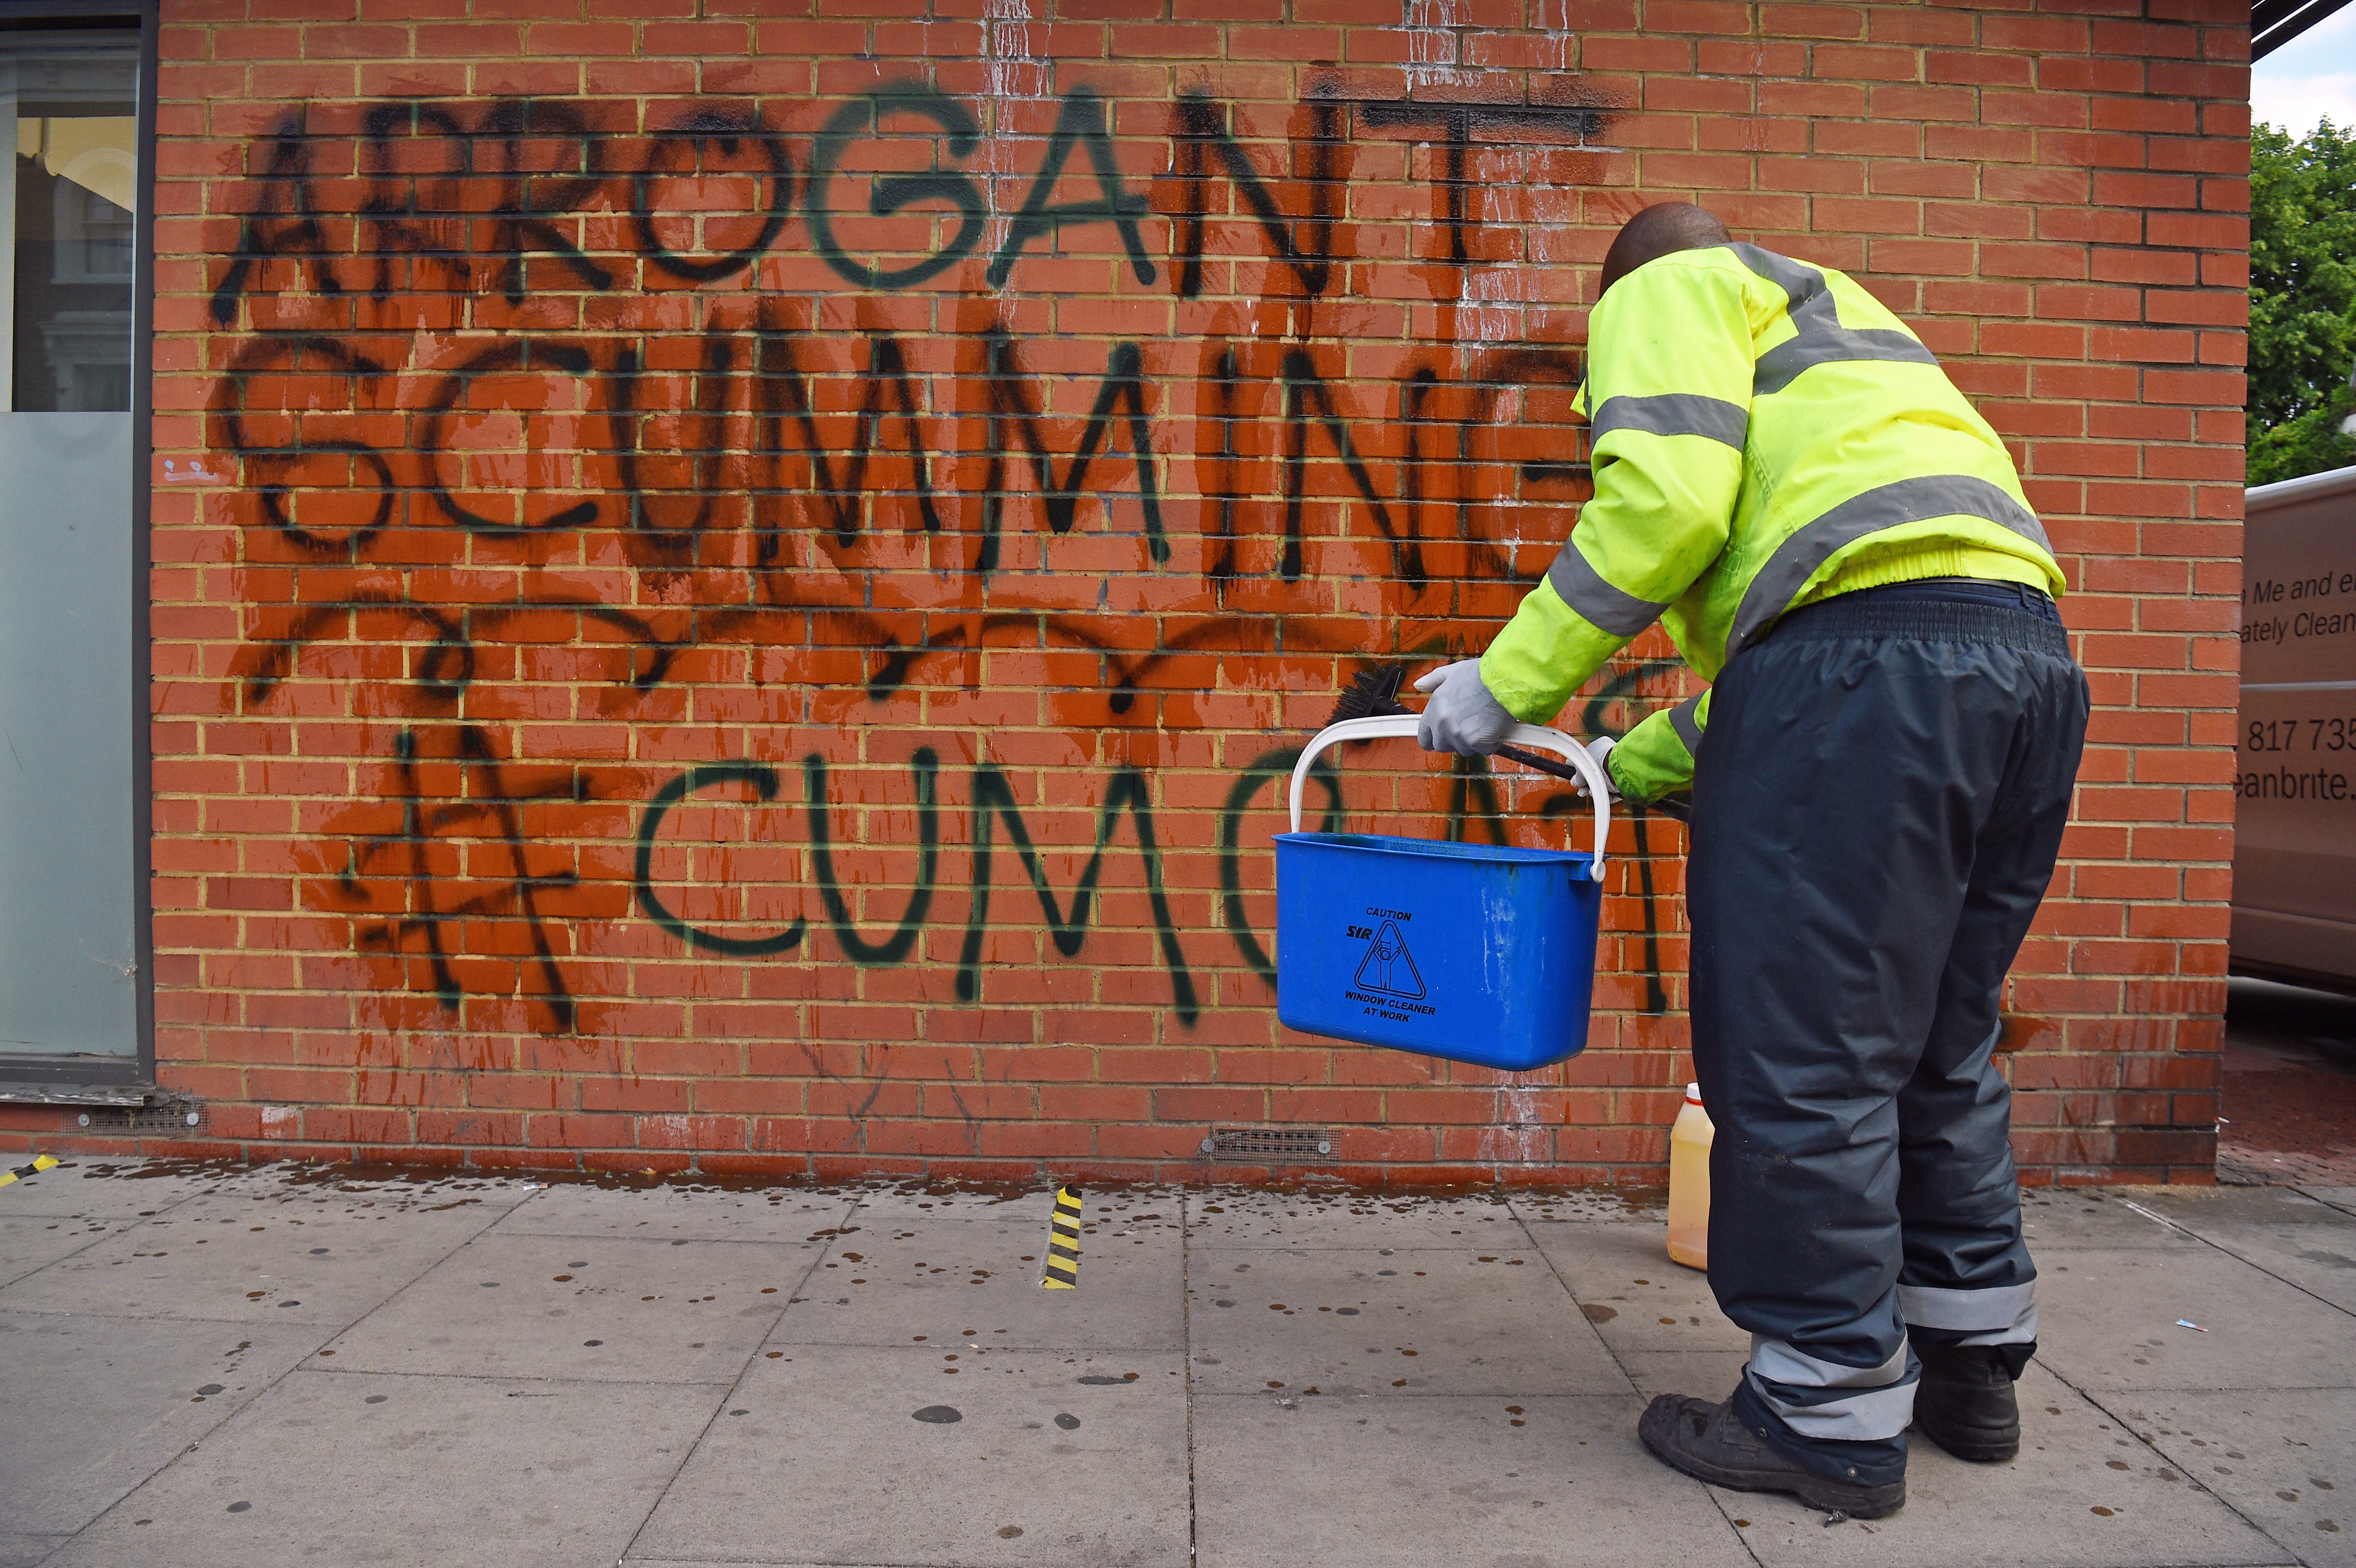 A workman removes graffiti from a wall near the north London home of the Prime Minister's top aide Dominic Cummings as the row over his Durham trip during the coronavirus lockdown continues. (Photo by Kirsty O'Connor/PA Images via Getty Images)